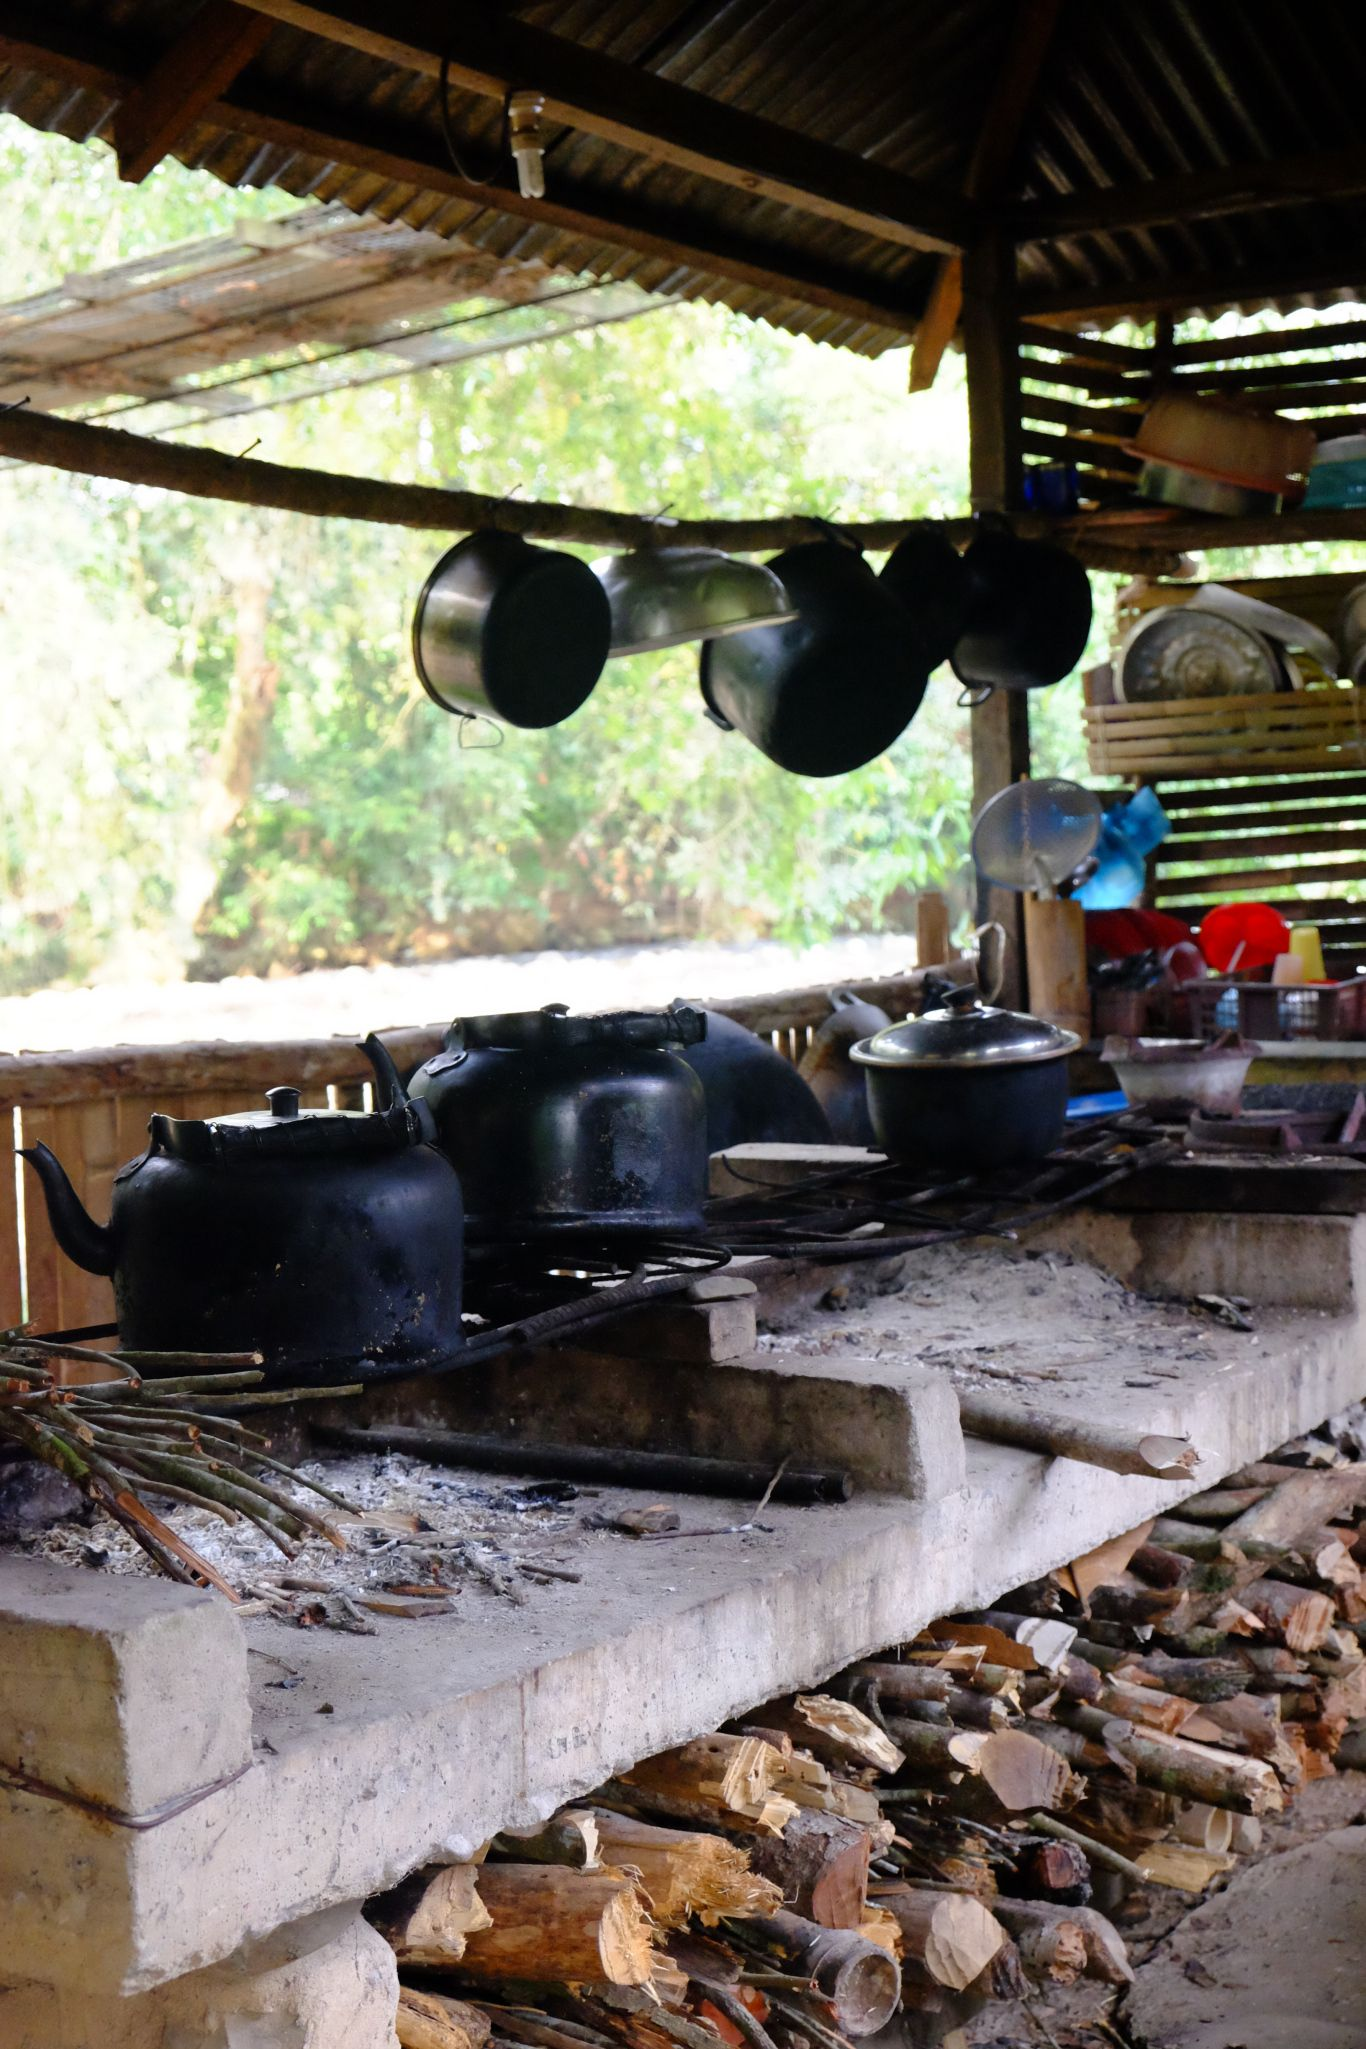 bahay kubo simple outdoor dirty kitchen design philippines